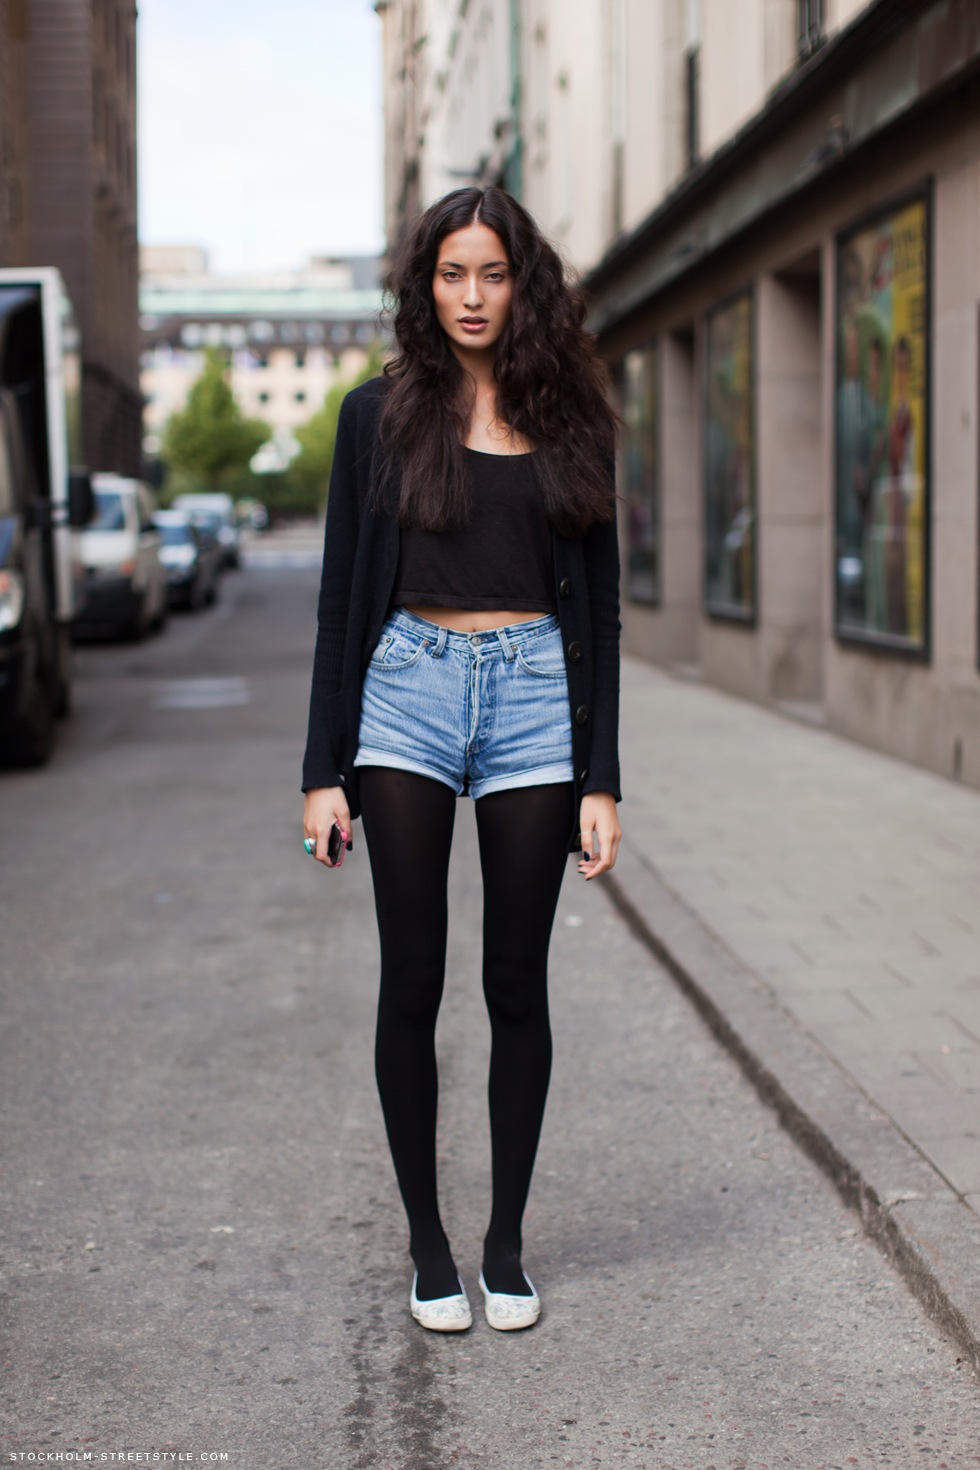 Girls Wearing Shorts And Tights